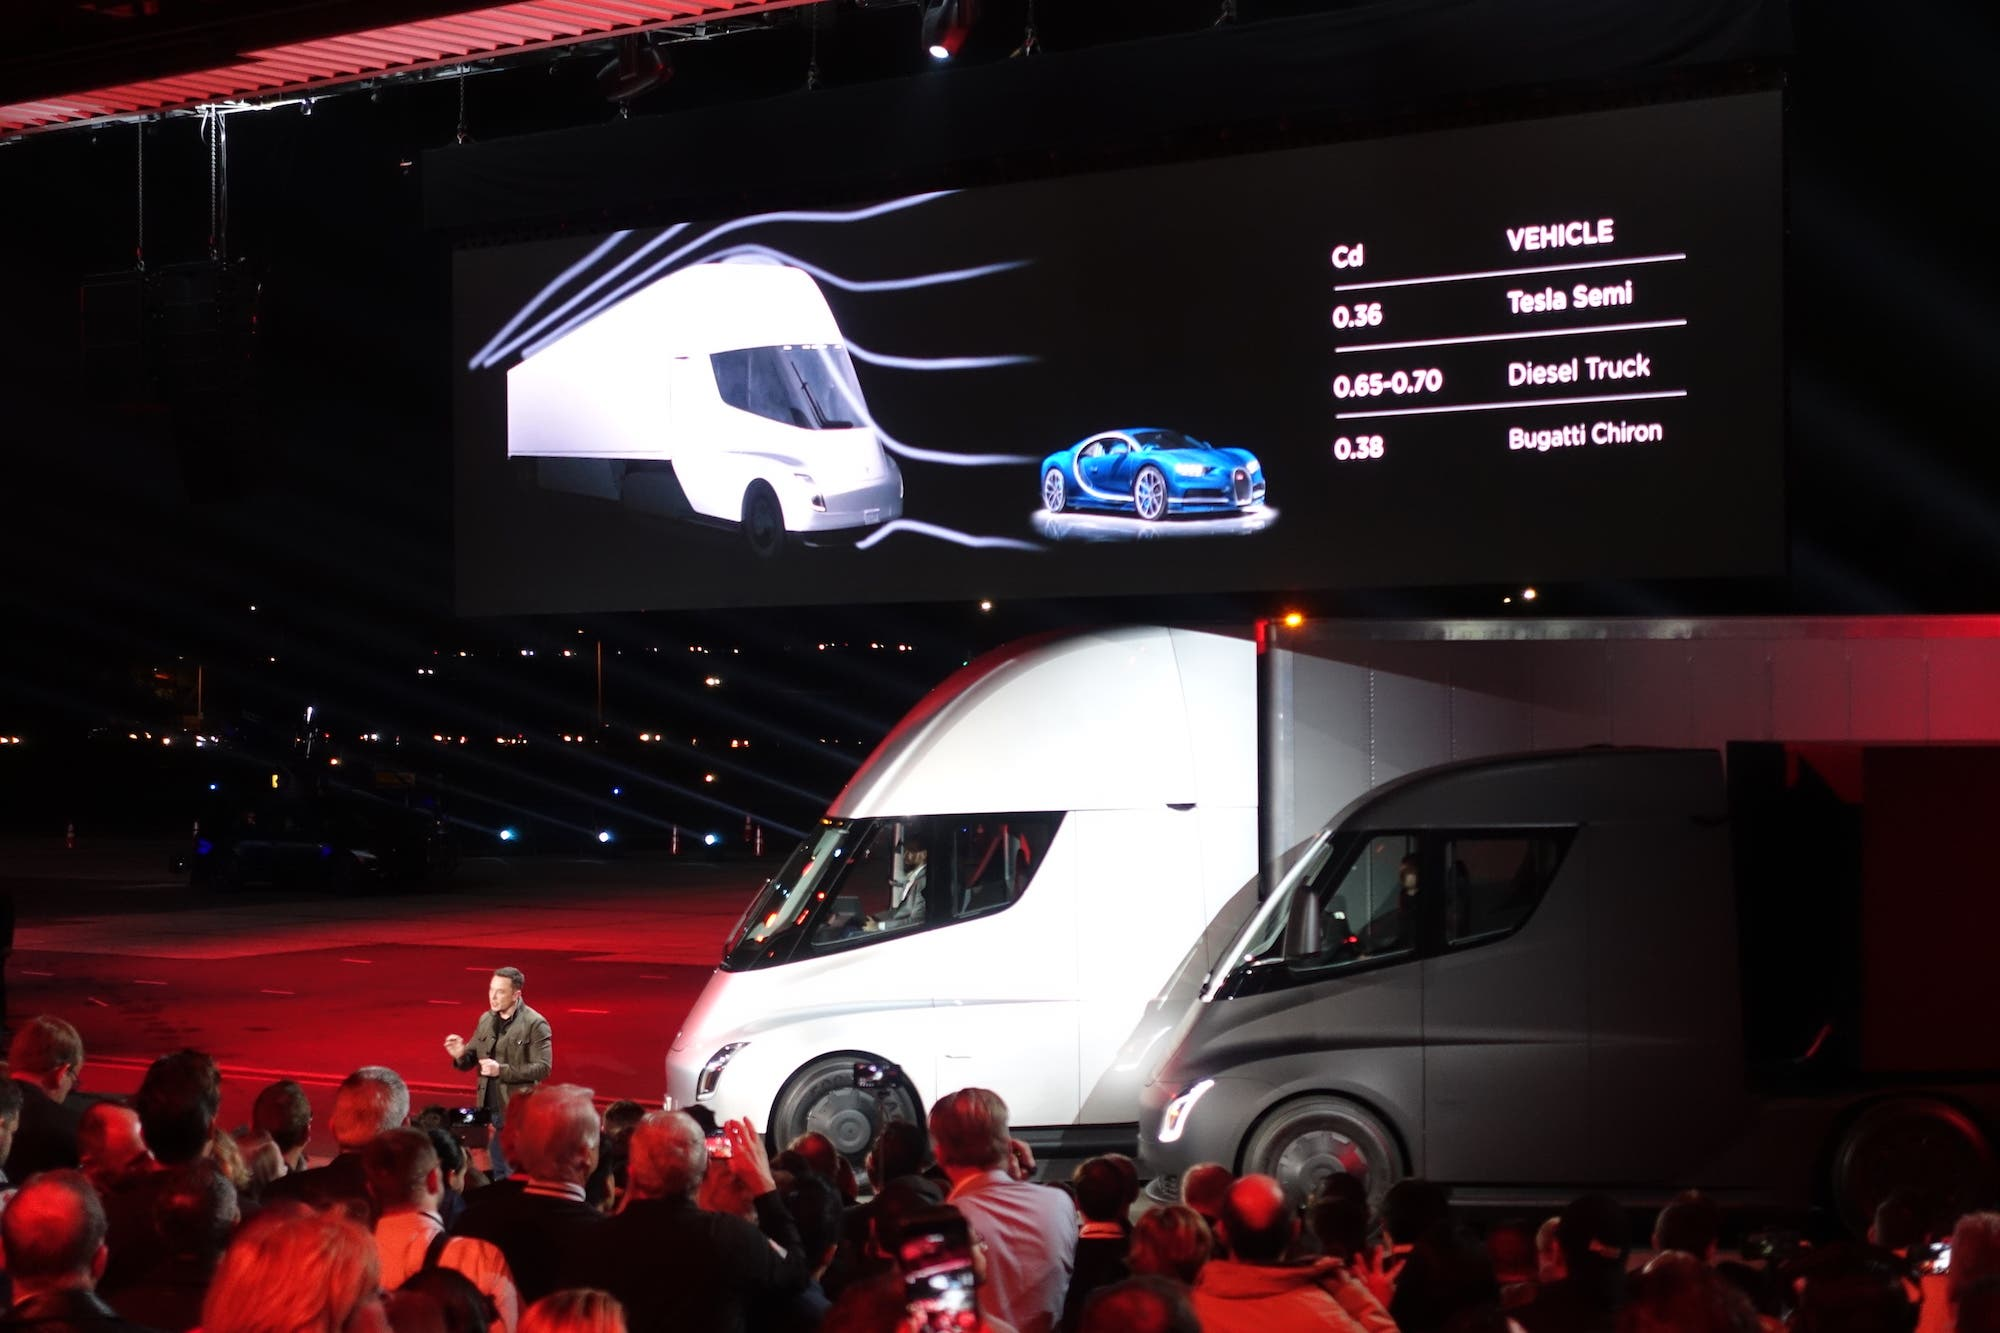 Last Year Walmart Ordered 15 Tesla Semi Electric Trucks For Service In The US And Another 10 Its Canadian Operations This Week It Announced Has